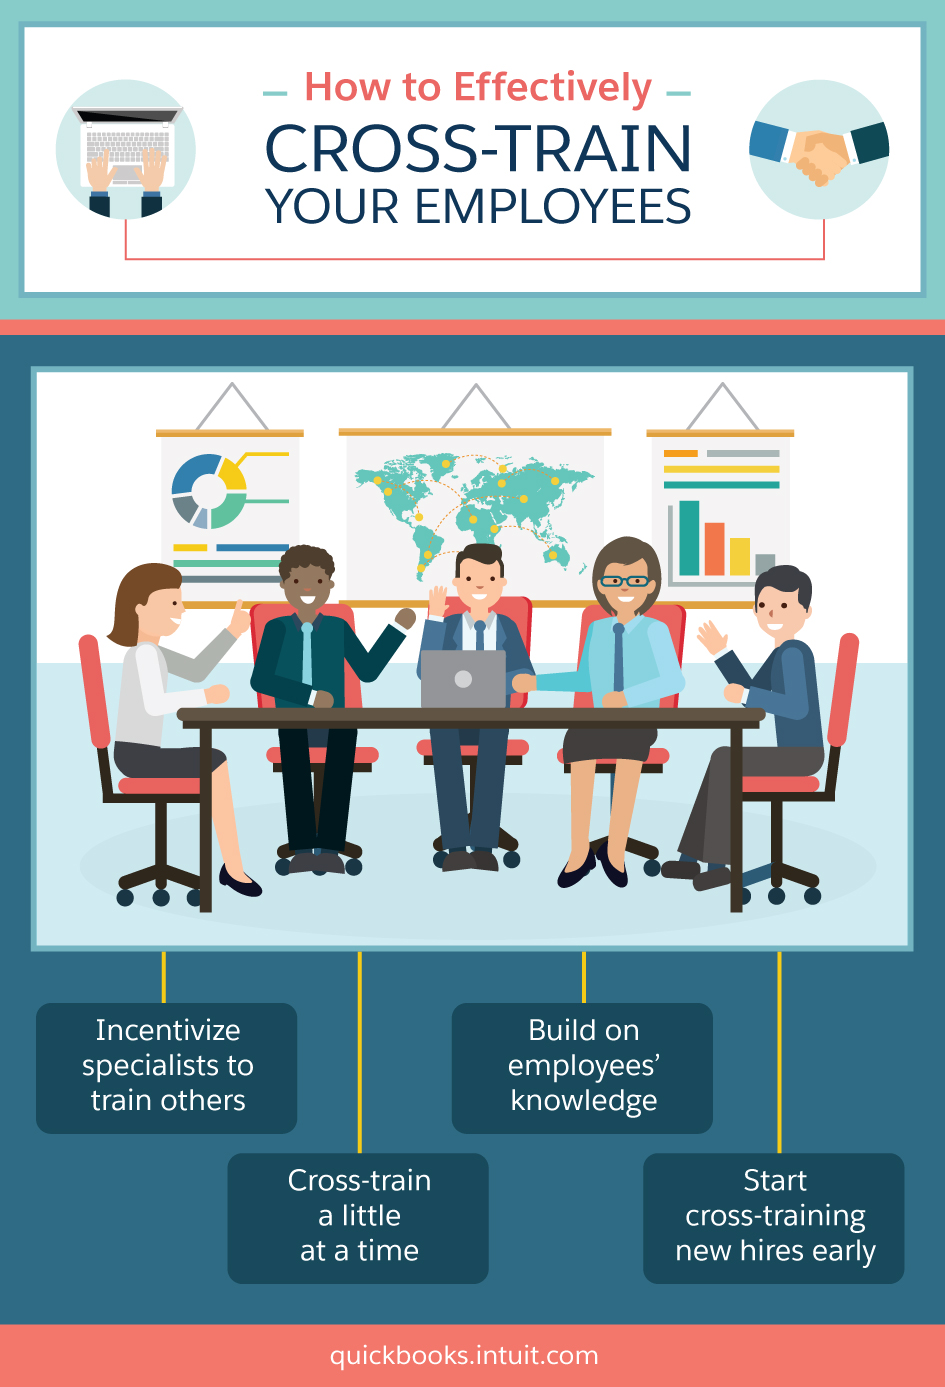 How to effectively cross-train your employees infographic